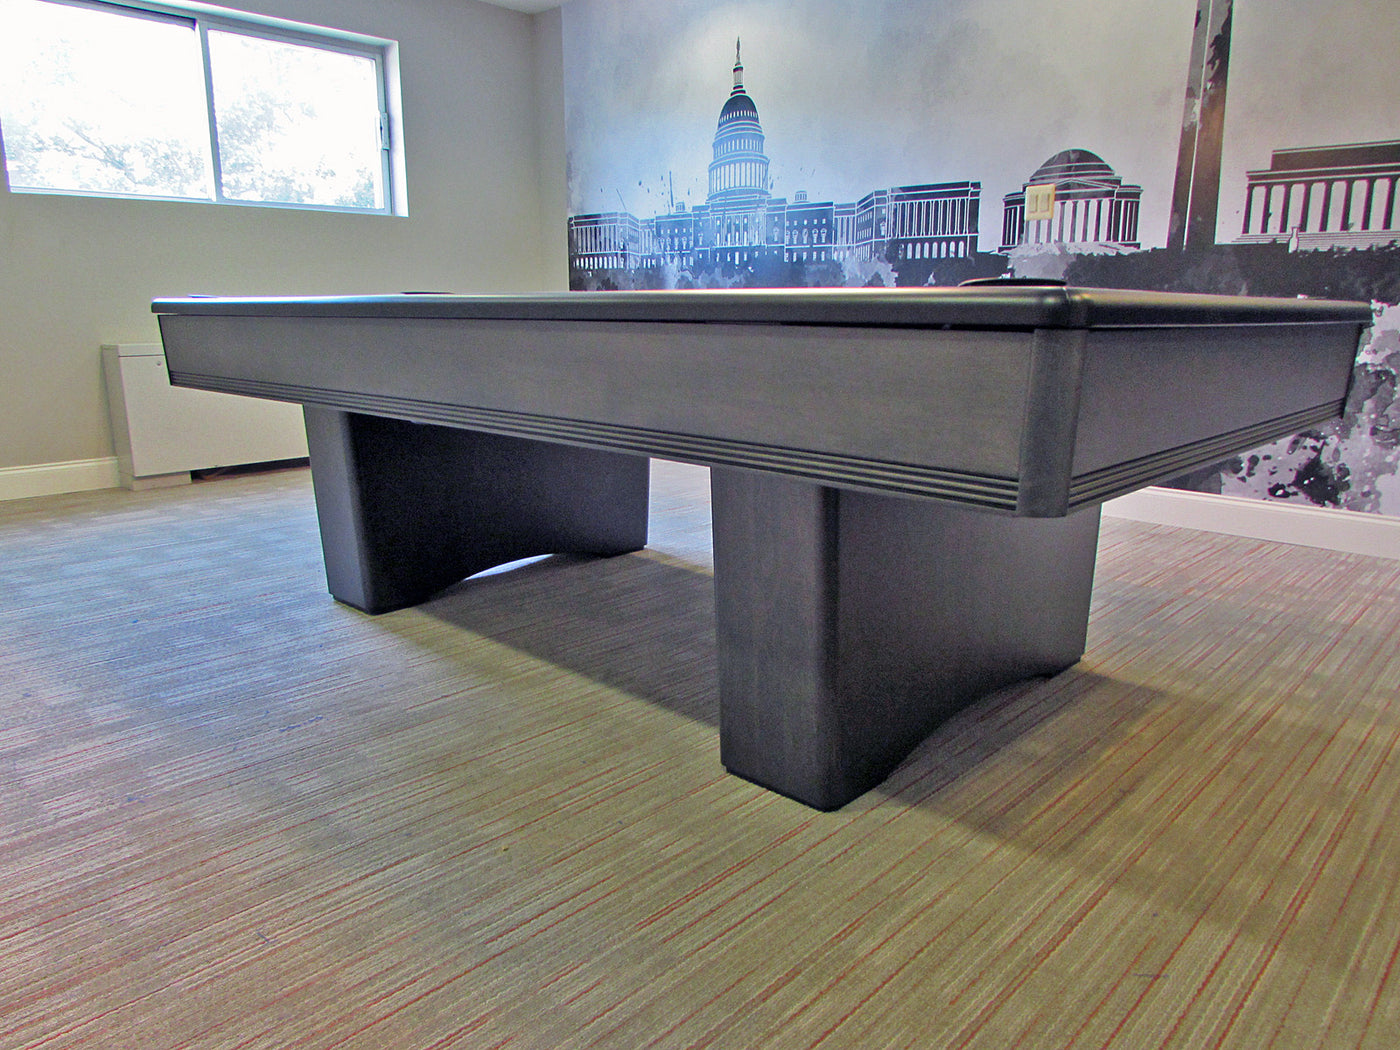 Olhausen York Pool Table Robbies Billiards - Pool table without slate